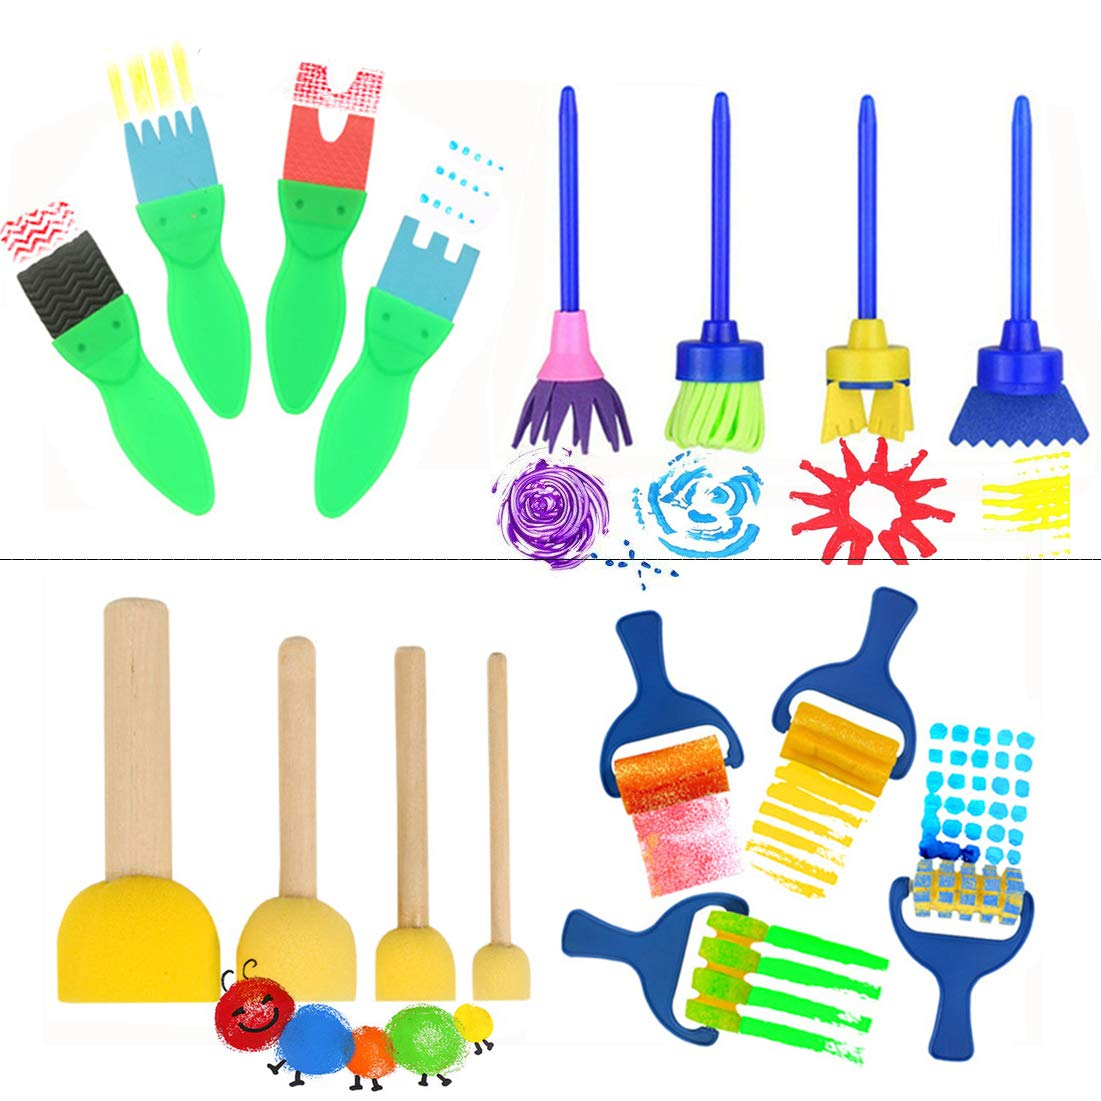 16 PCS - Paint Brushes for Kids, Artist Paint Texture Brushes - Early Learning Graffiti Paint Brush EVA Sponges Foam Painting Tools Set for Kids Painting Drawing Crafts and DIY YWHB